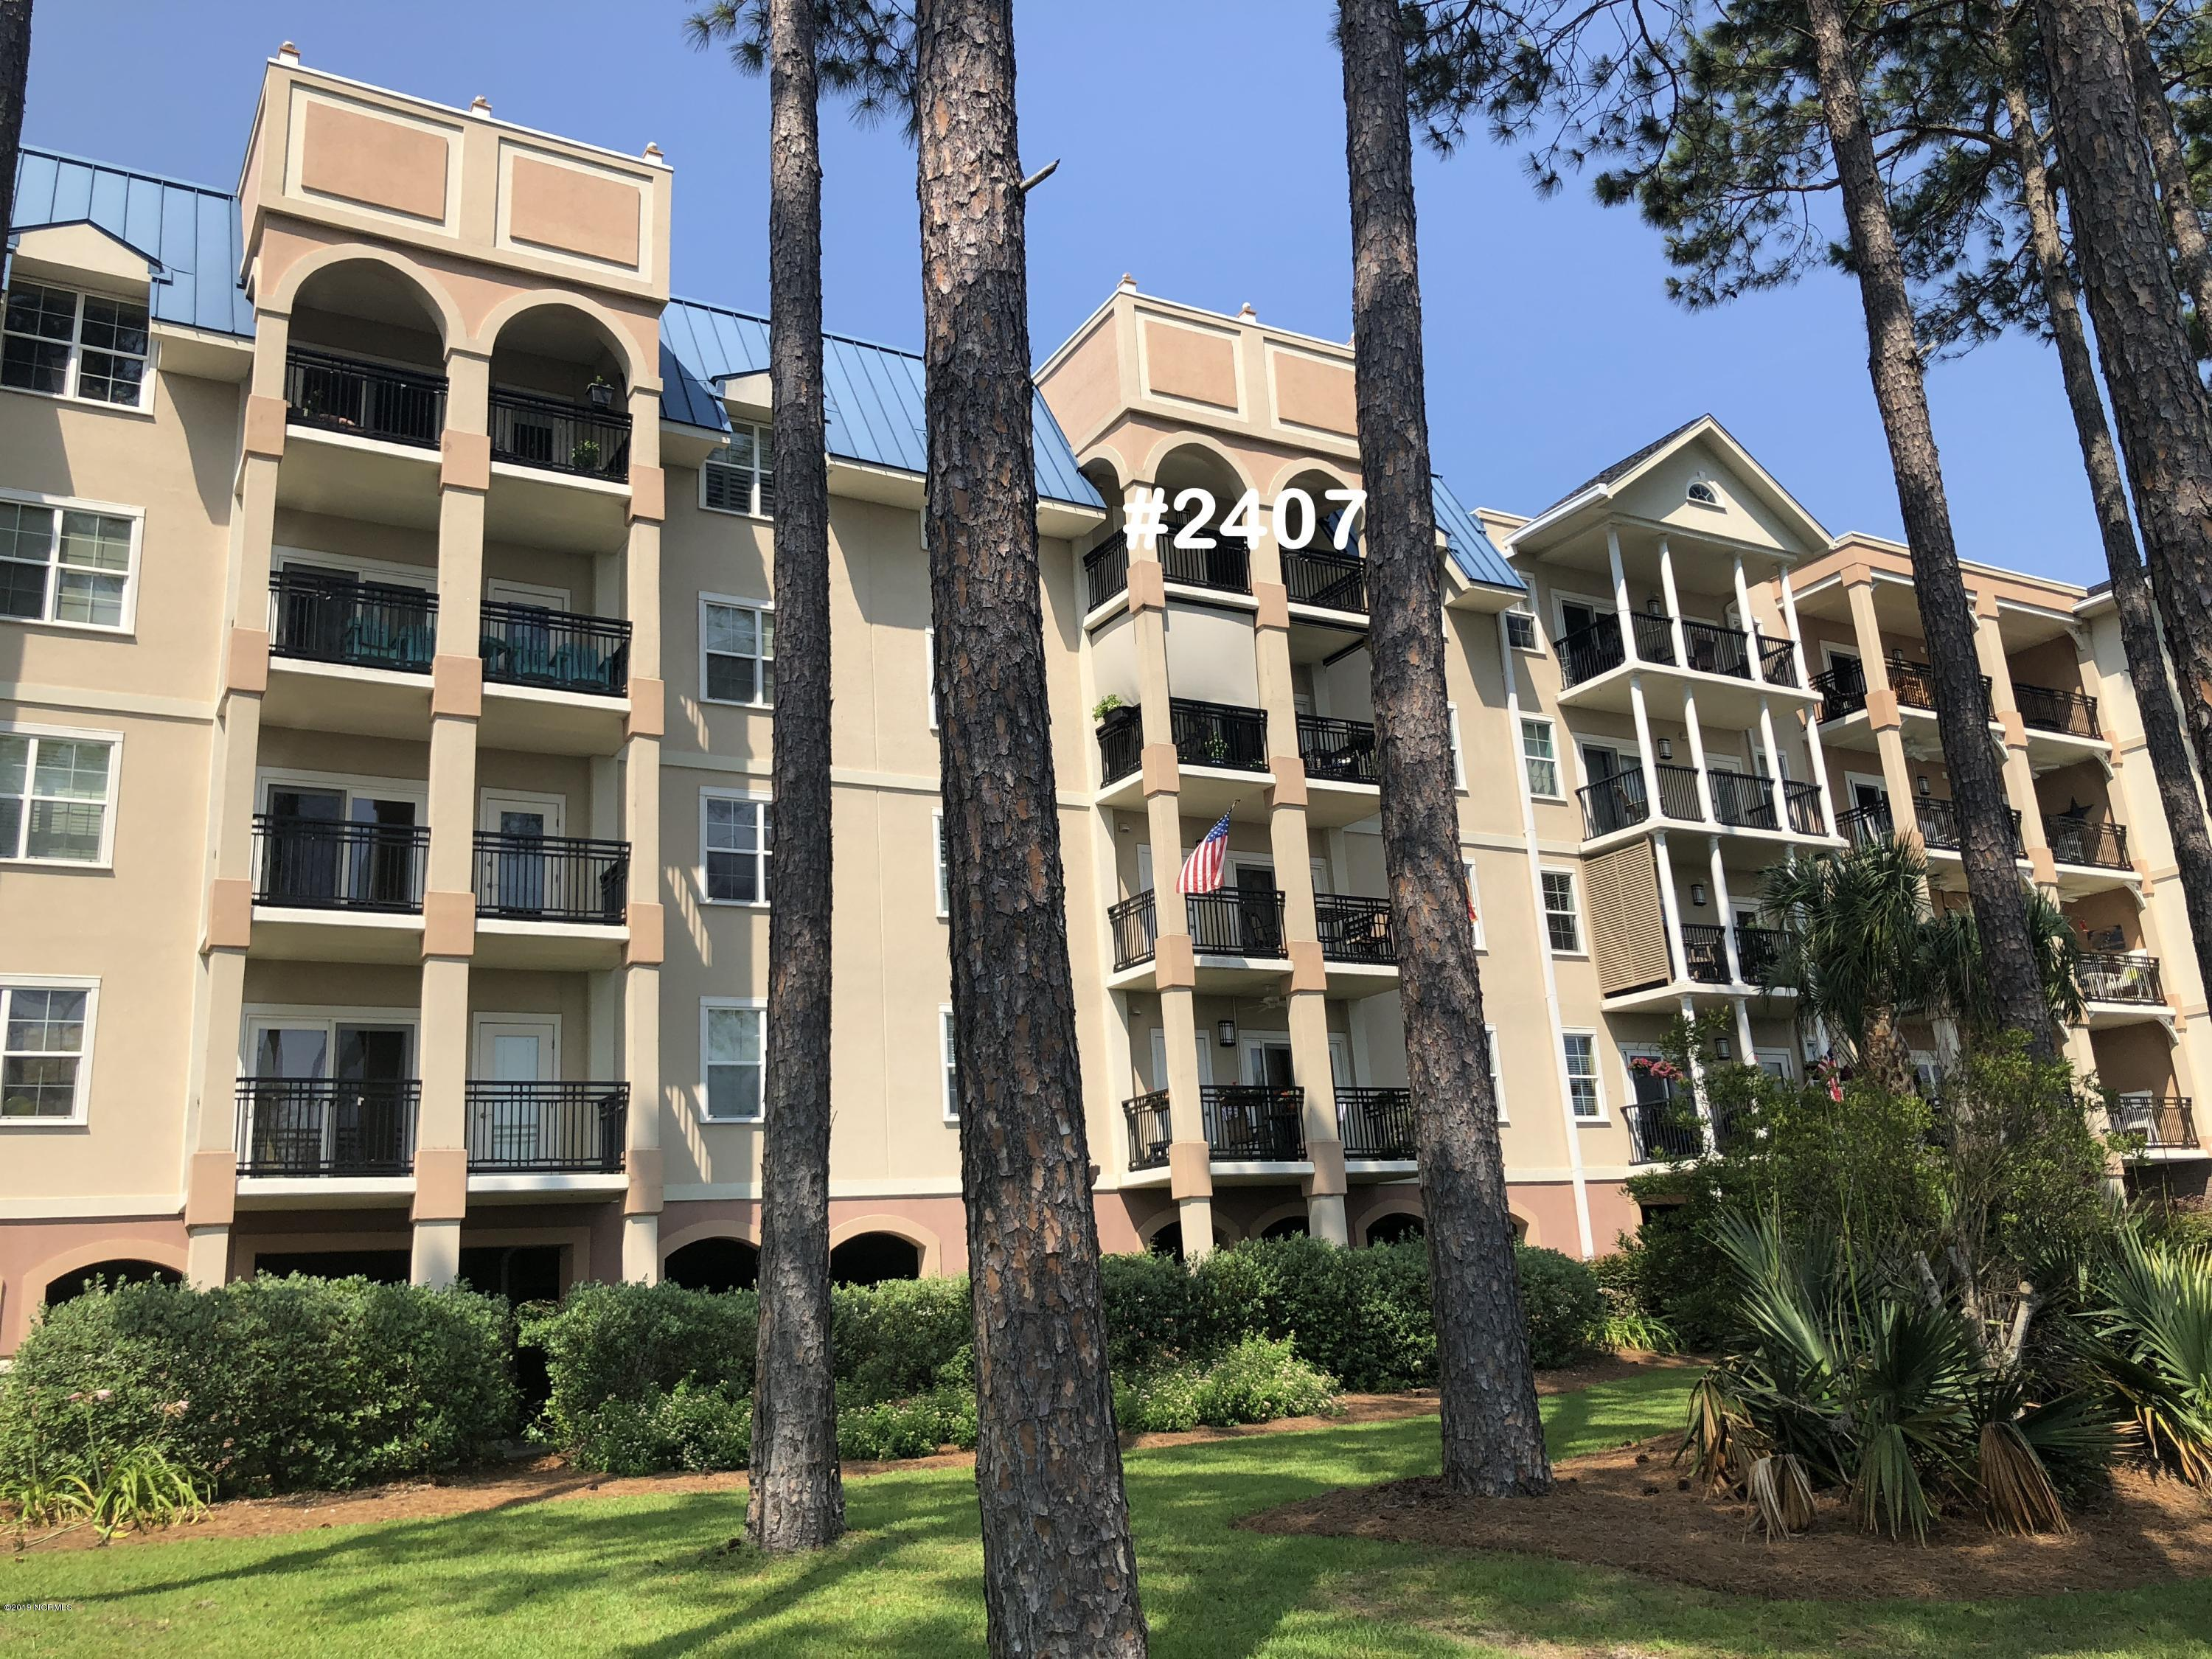 2100 Marsh Grove Lane #2407 Southport, NC 28461